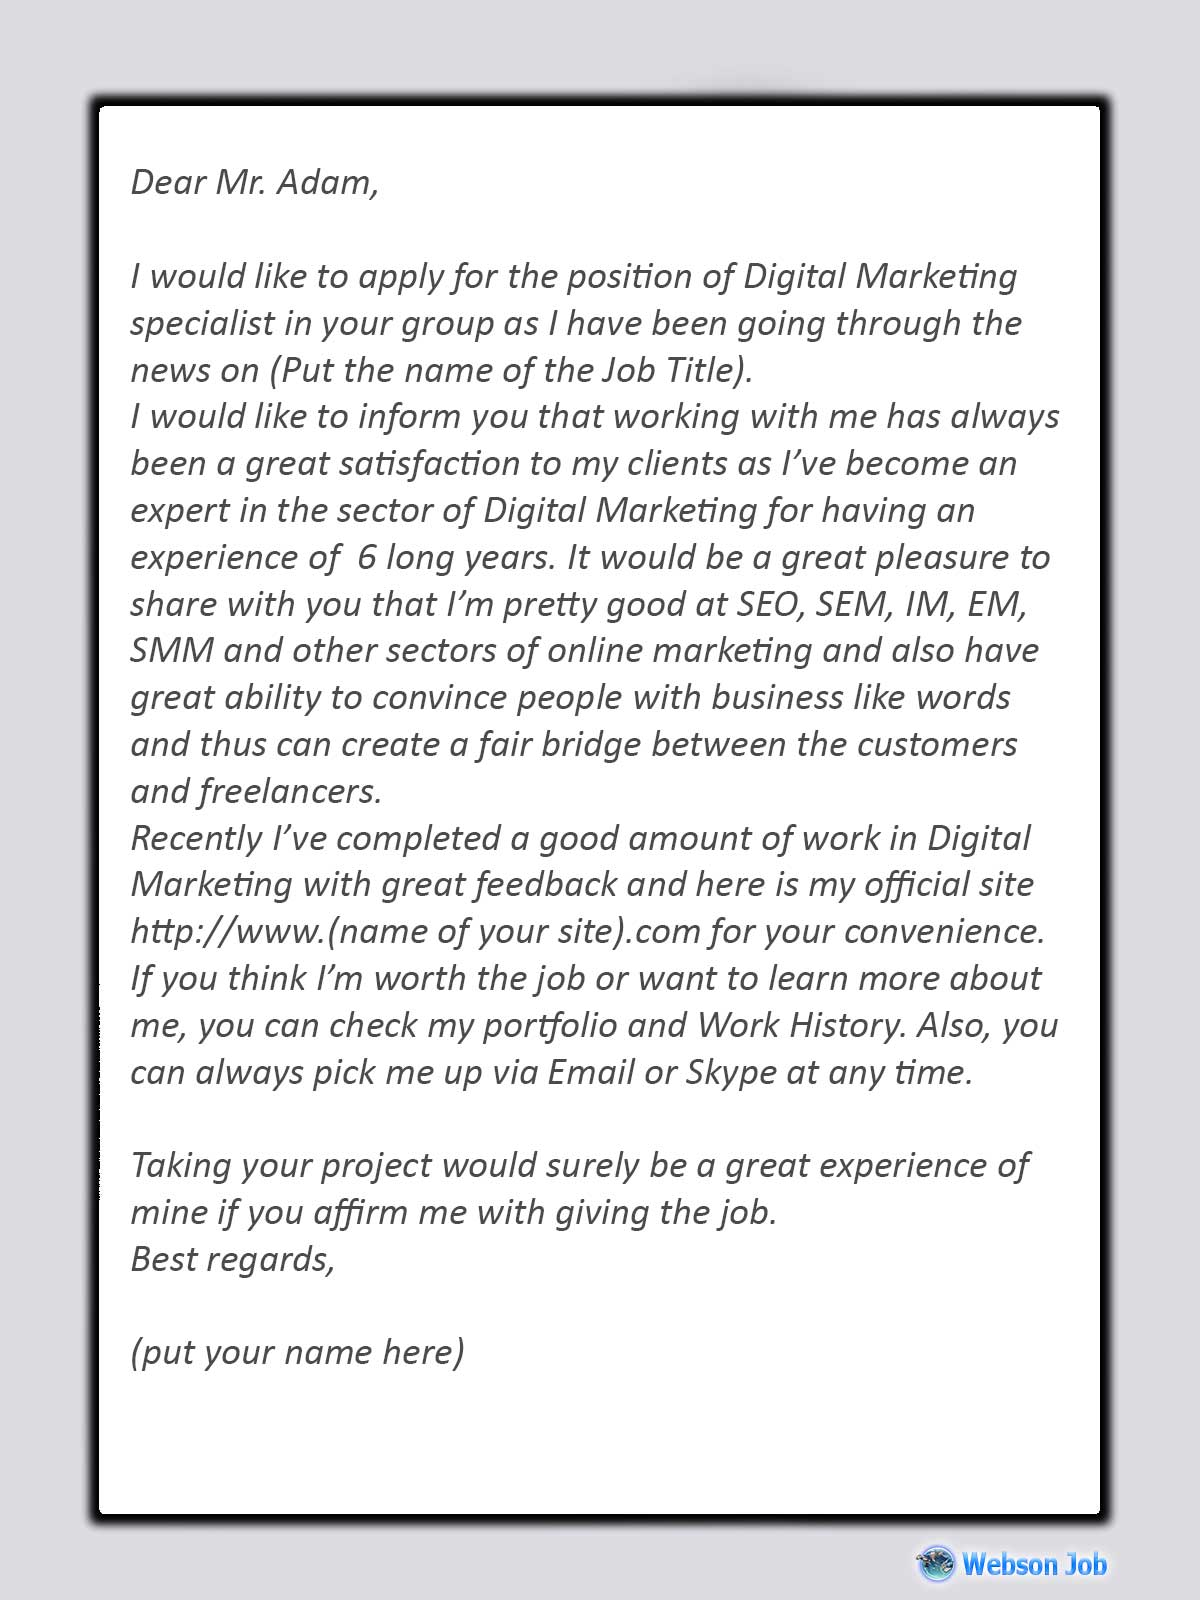 Upwork Proposal Sample for Digital Marketing